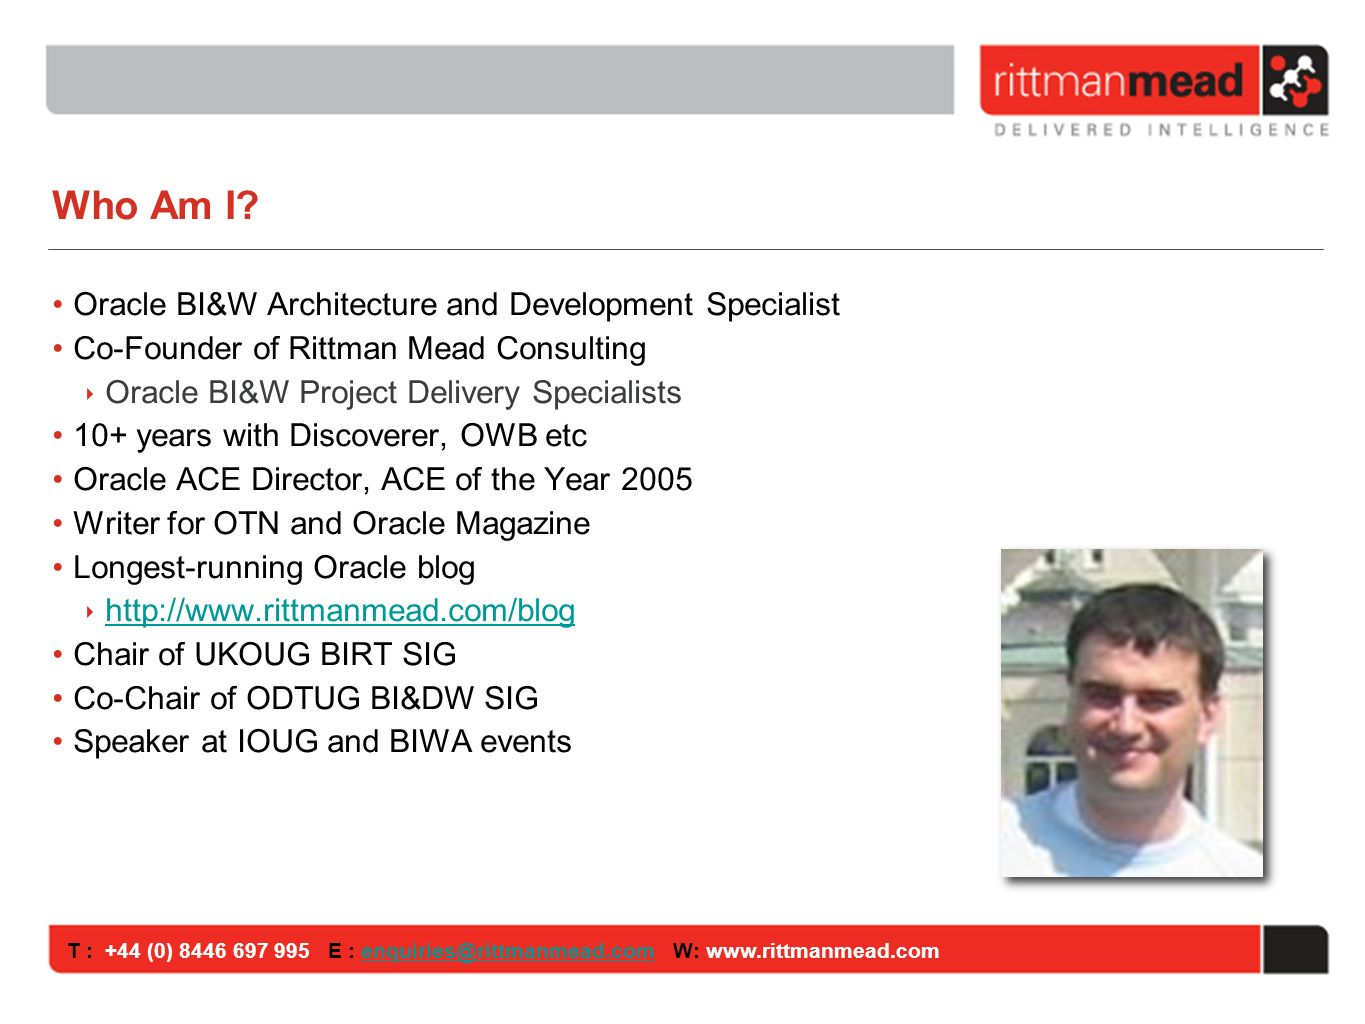 T : +44 (0) 8446 697 995 E : enquiries@rittmanmead.com W: www.rittmanmead.comenquiries@rittmanmead.com Rittman Mead Consulting Oracle BI&DW Project Specialists Consulting, Training, Support Works with you to ensure OBIEE and Oracle BI Applications project success Small, focused team OWB, Oracle BI, DW technical specialists Clients in the UK, Europe, USA